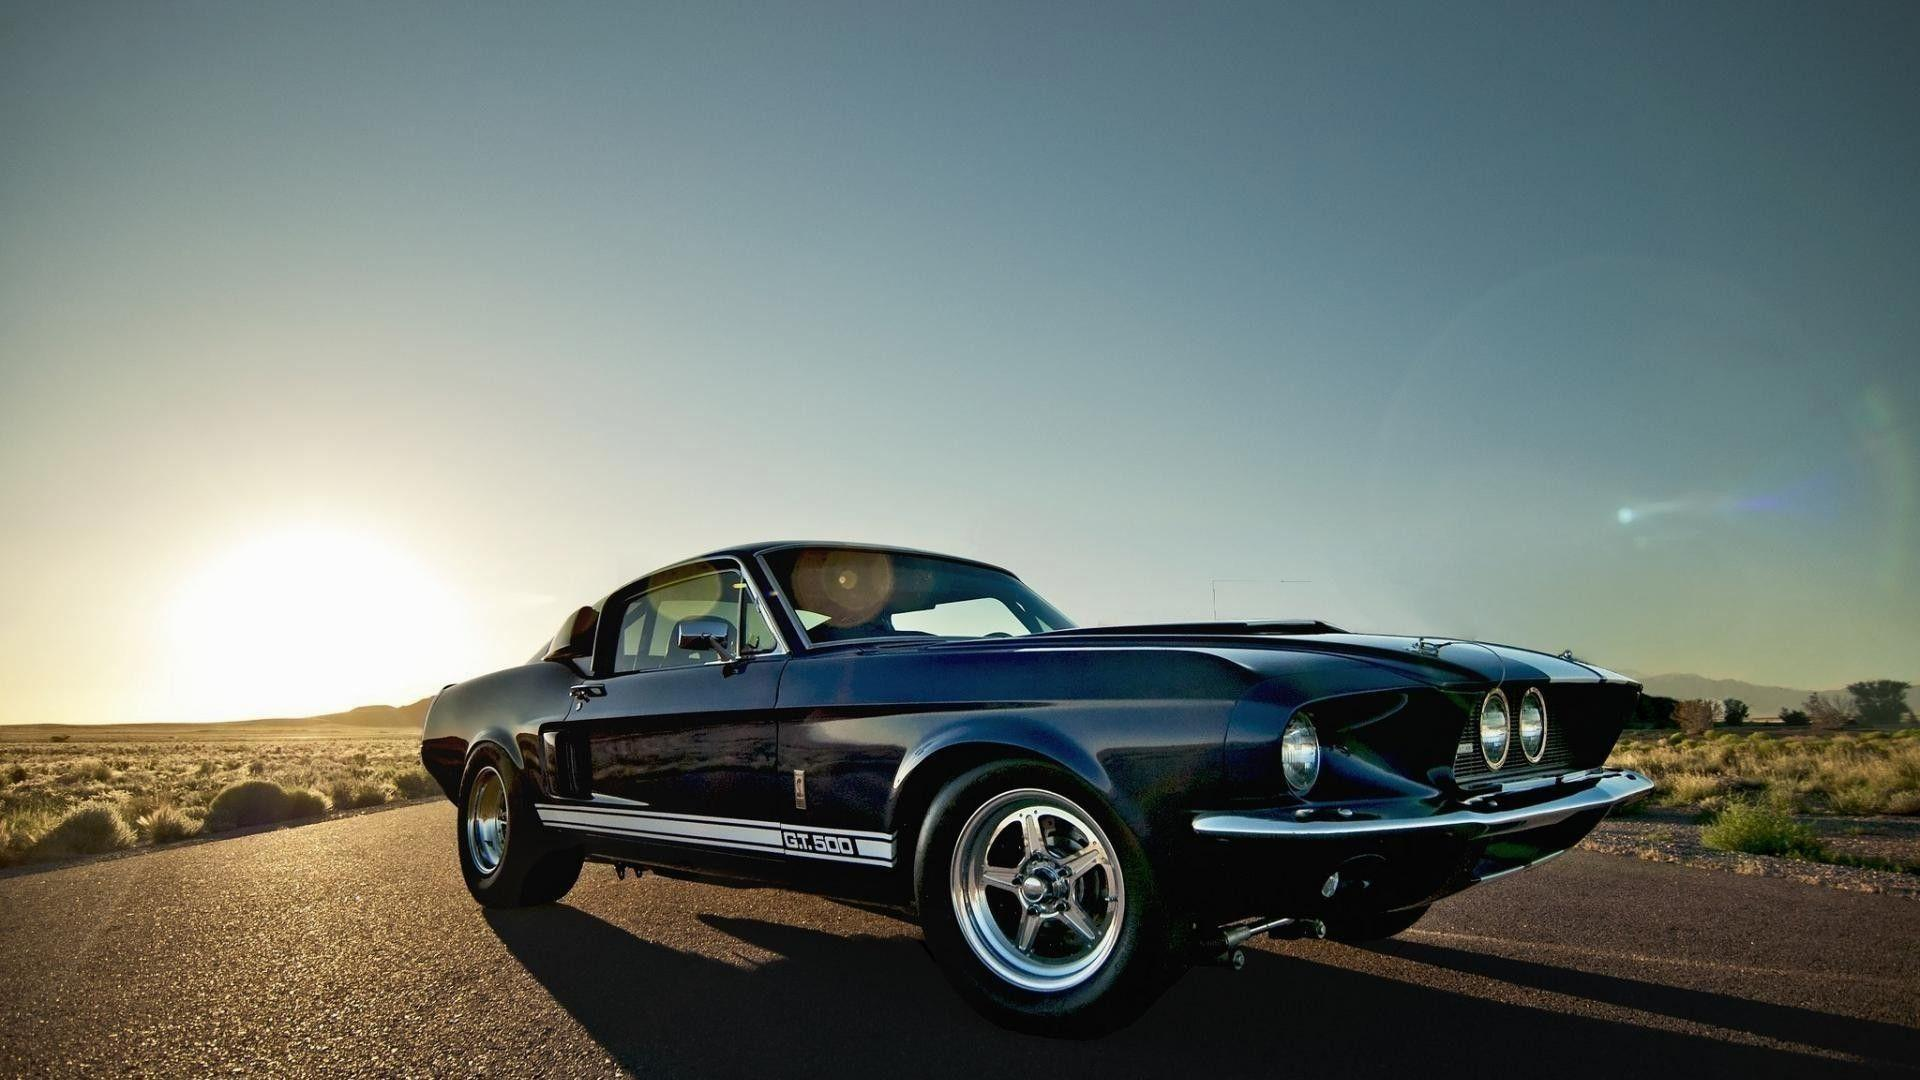 Wallpaper Mustang Hd For Android Apk Download